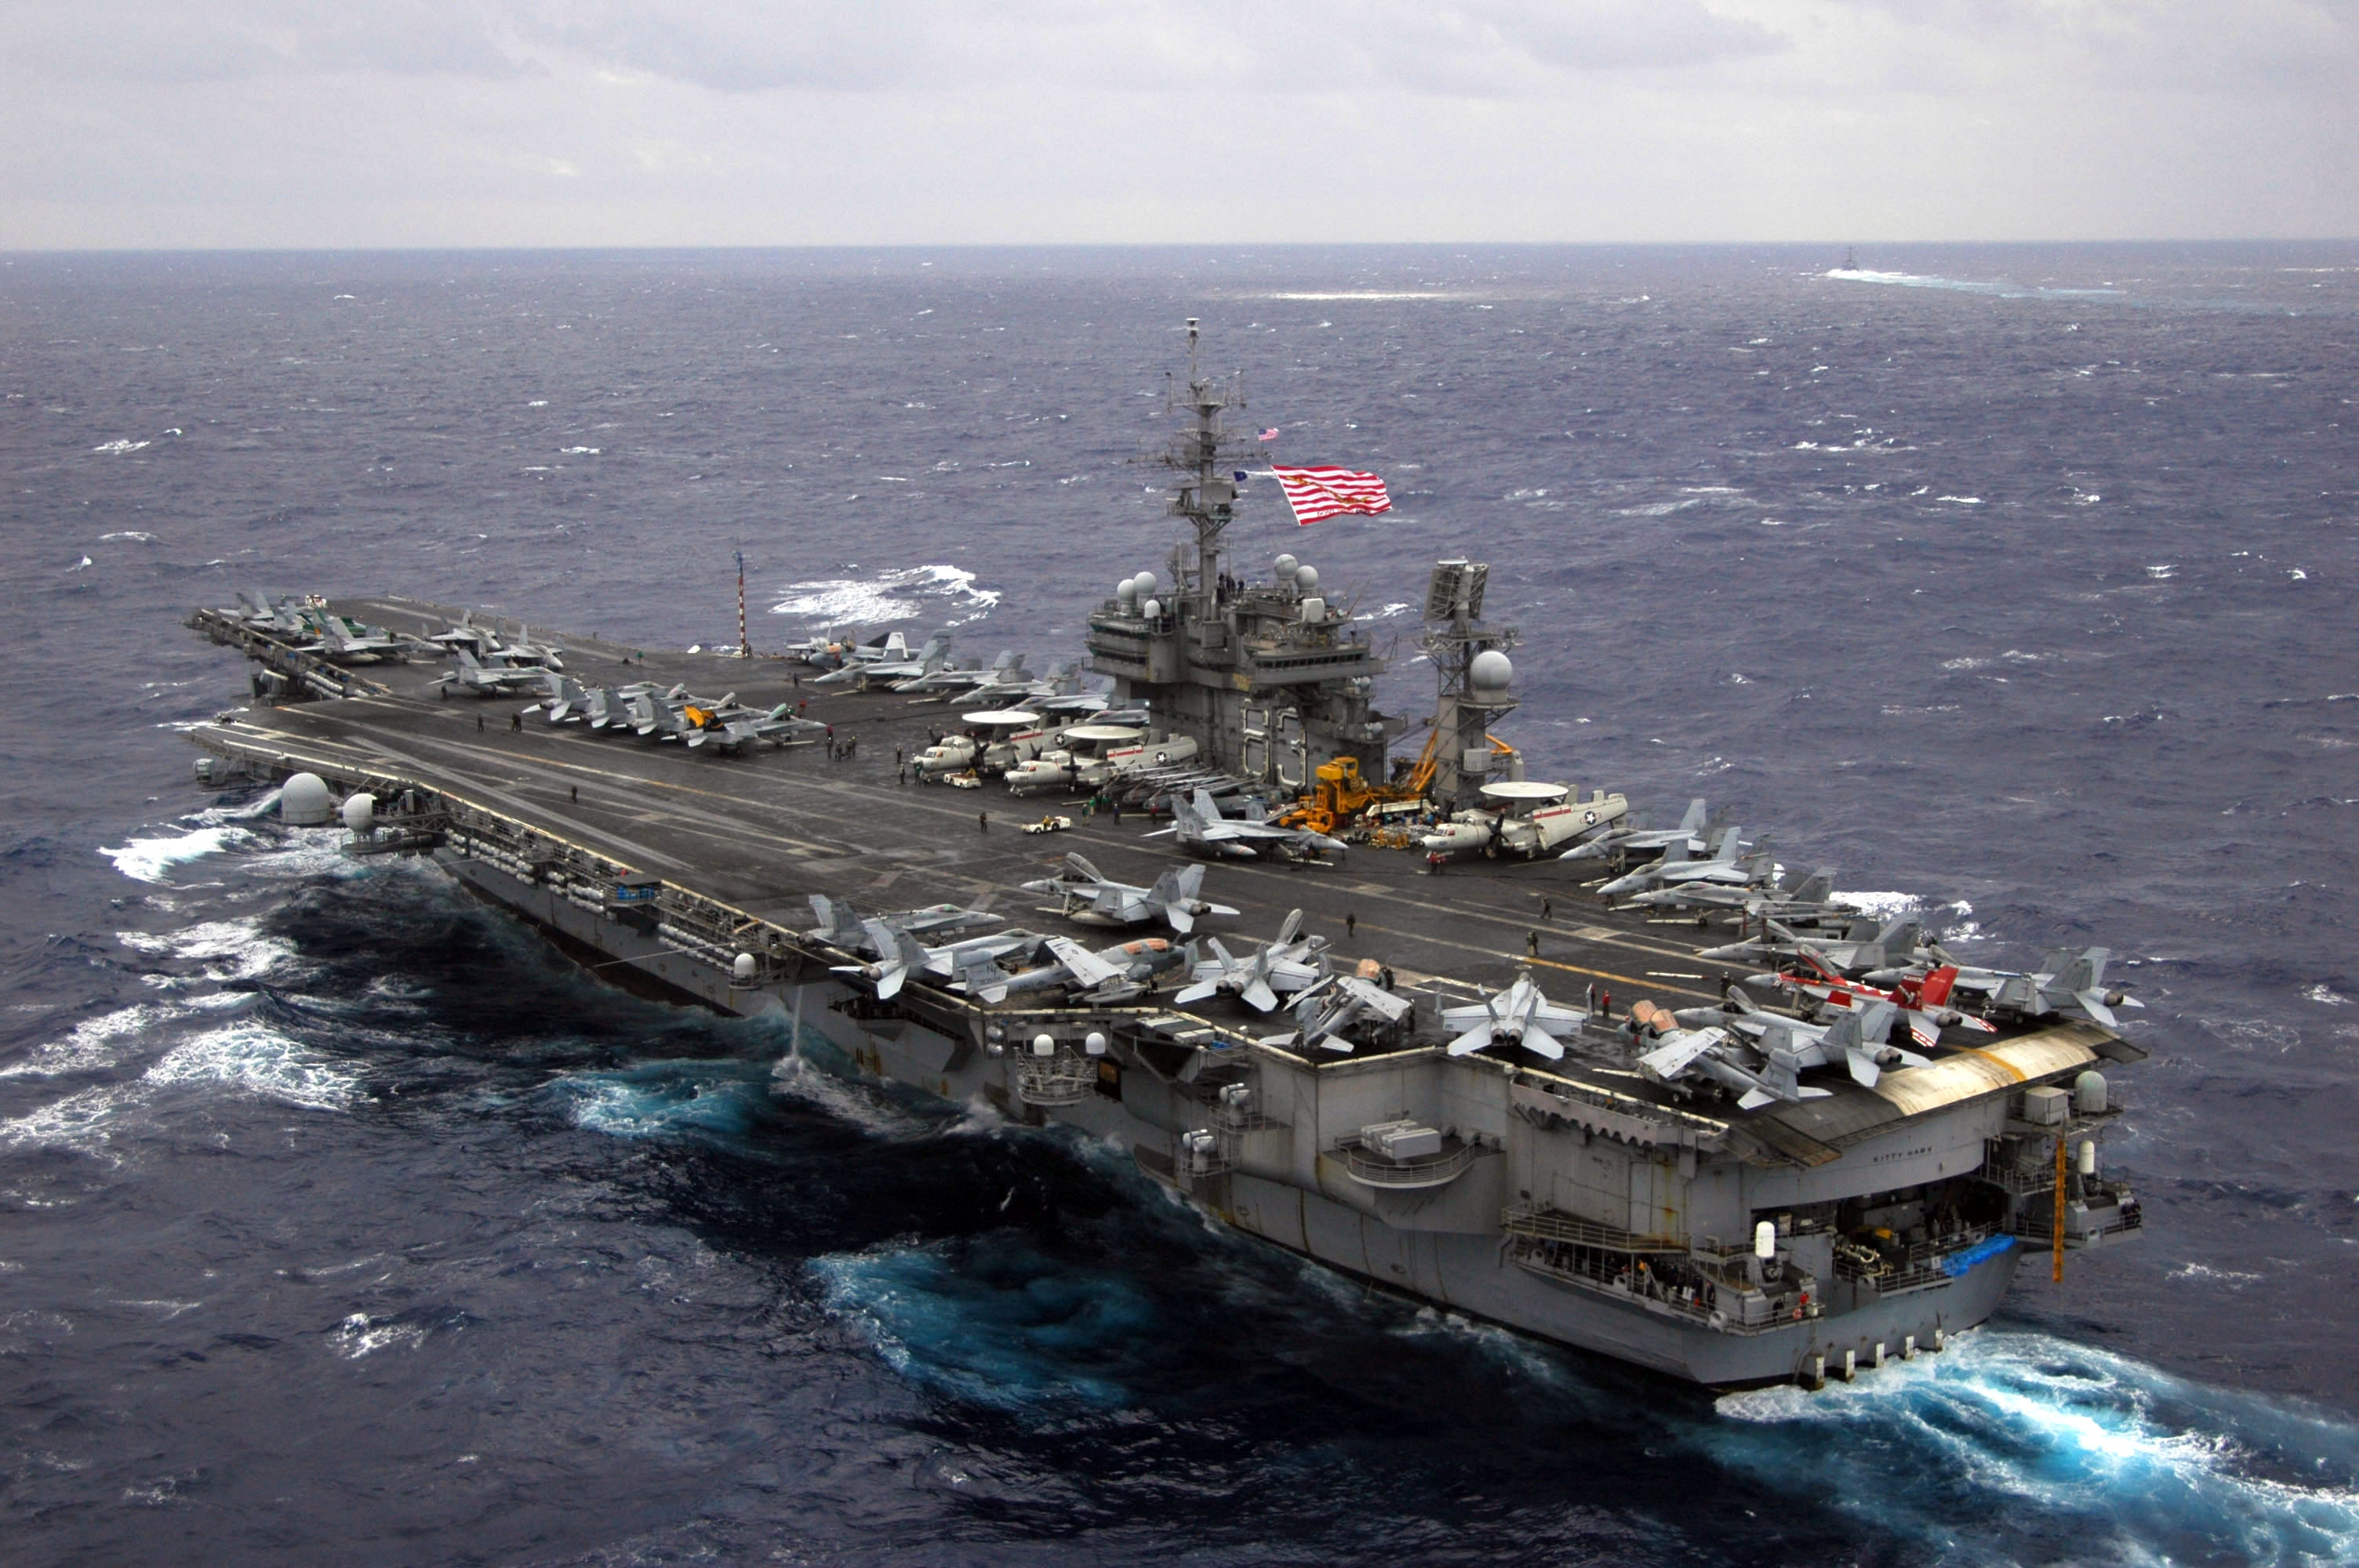 1000+ images about U.S. NAVY on Pinterest.